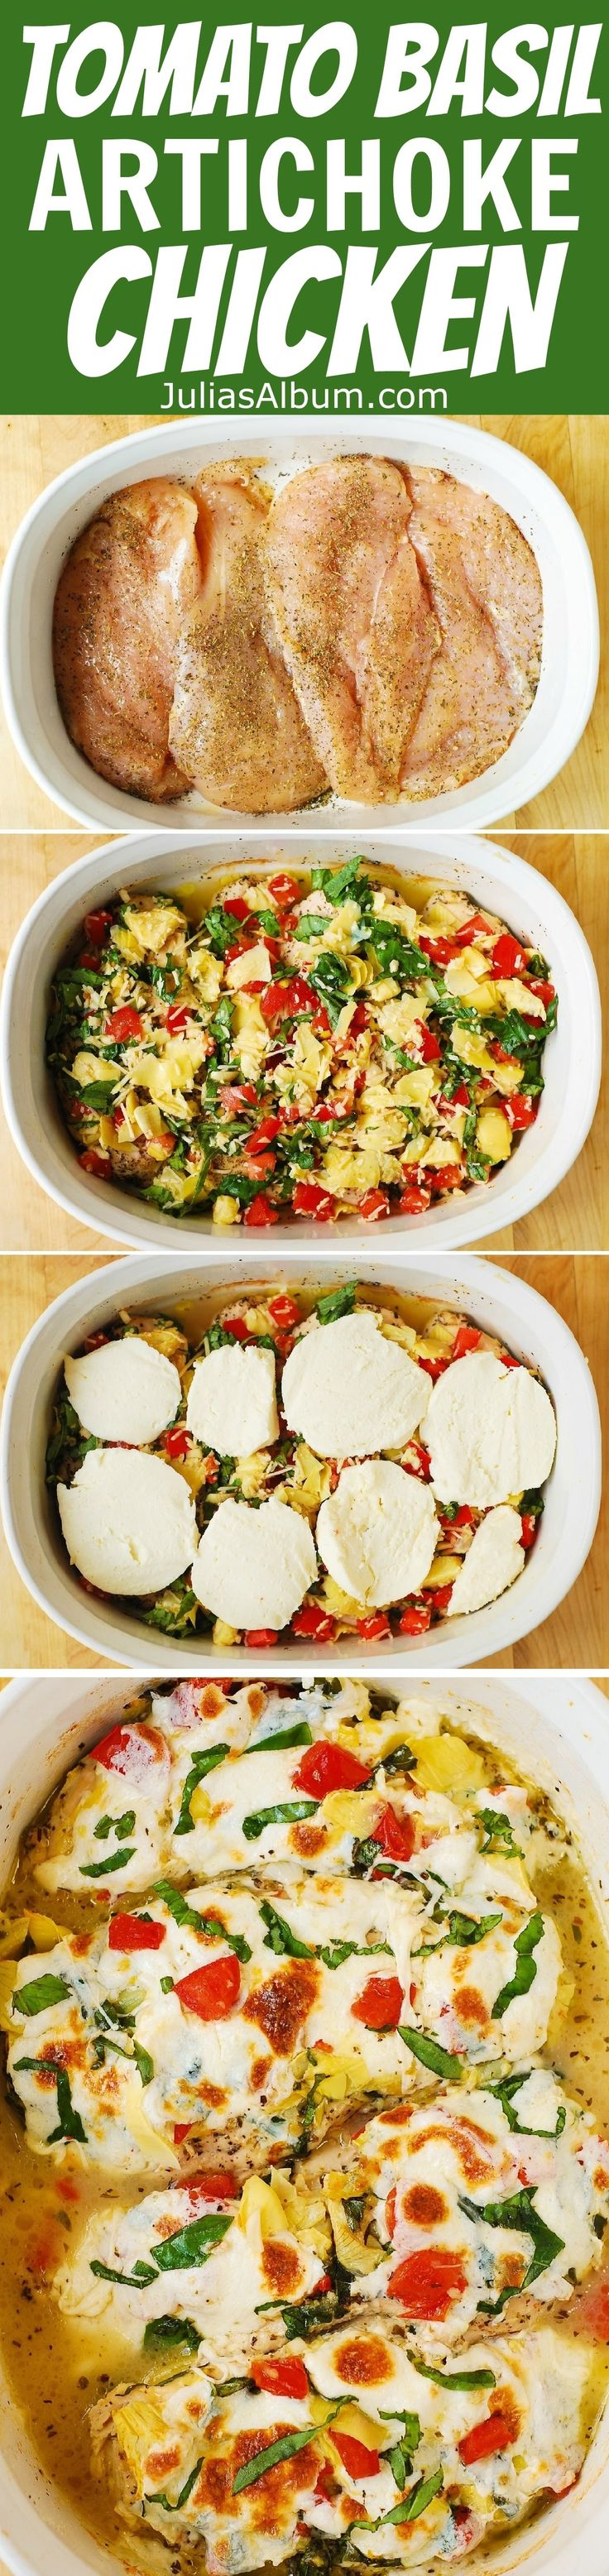 Tomato Basil Artichoke Baked Chicken breasts with melted mozzarella cheese. Healthy, Mediterranean dinner recipe - perfect for the Spring and Summer! Light, lean, packed with protein, and very satisfying! #healthy #glutenfree More